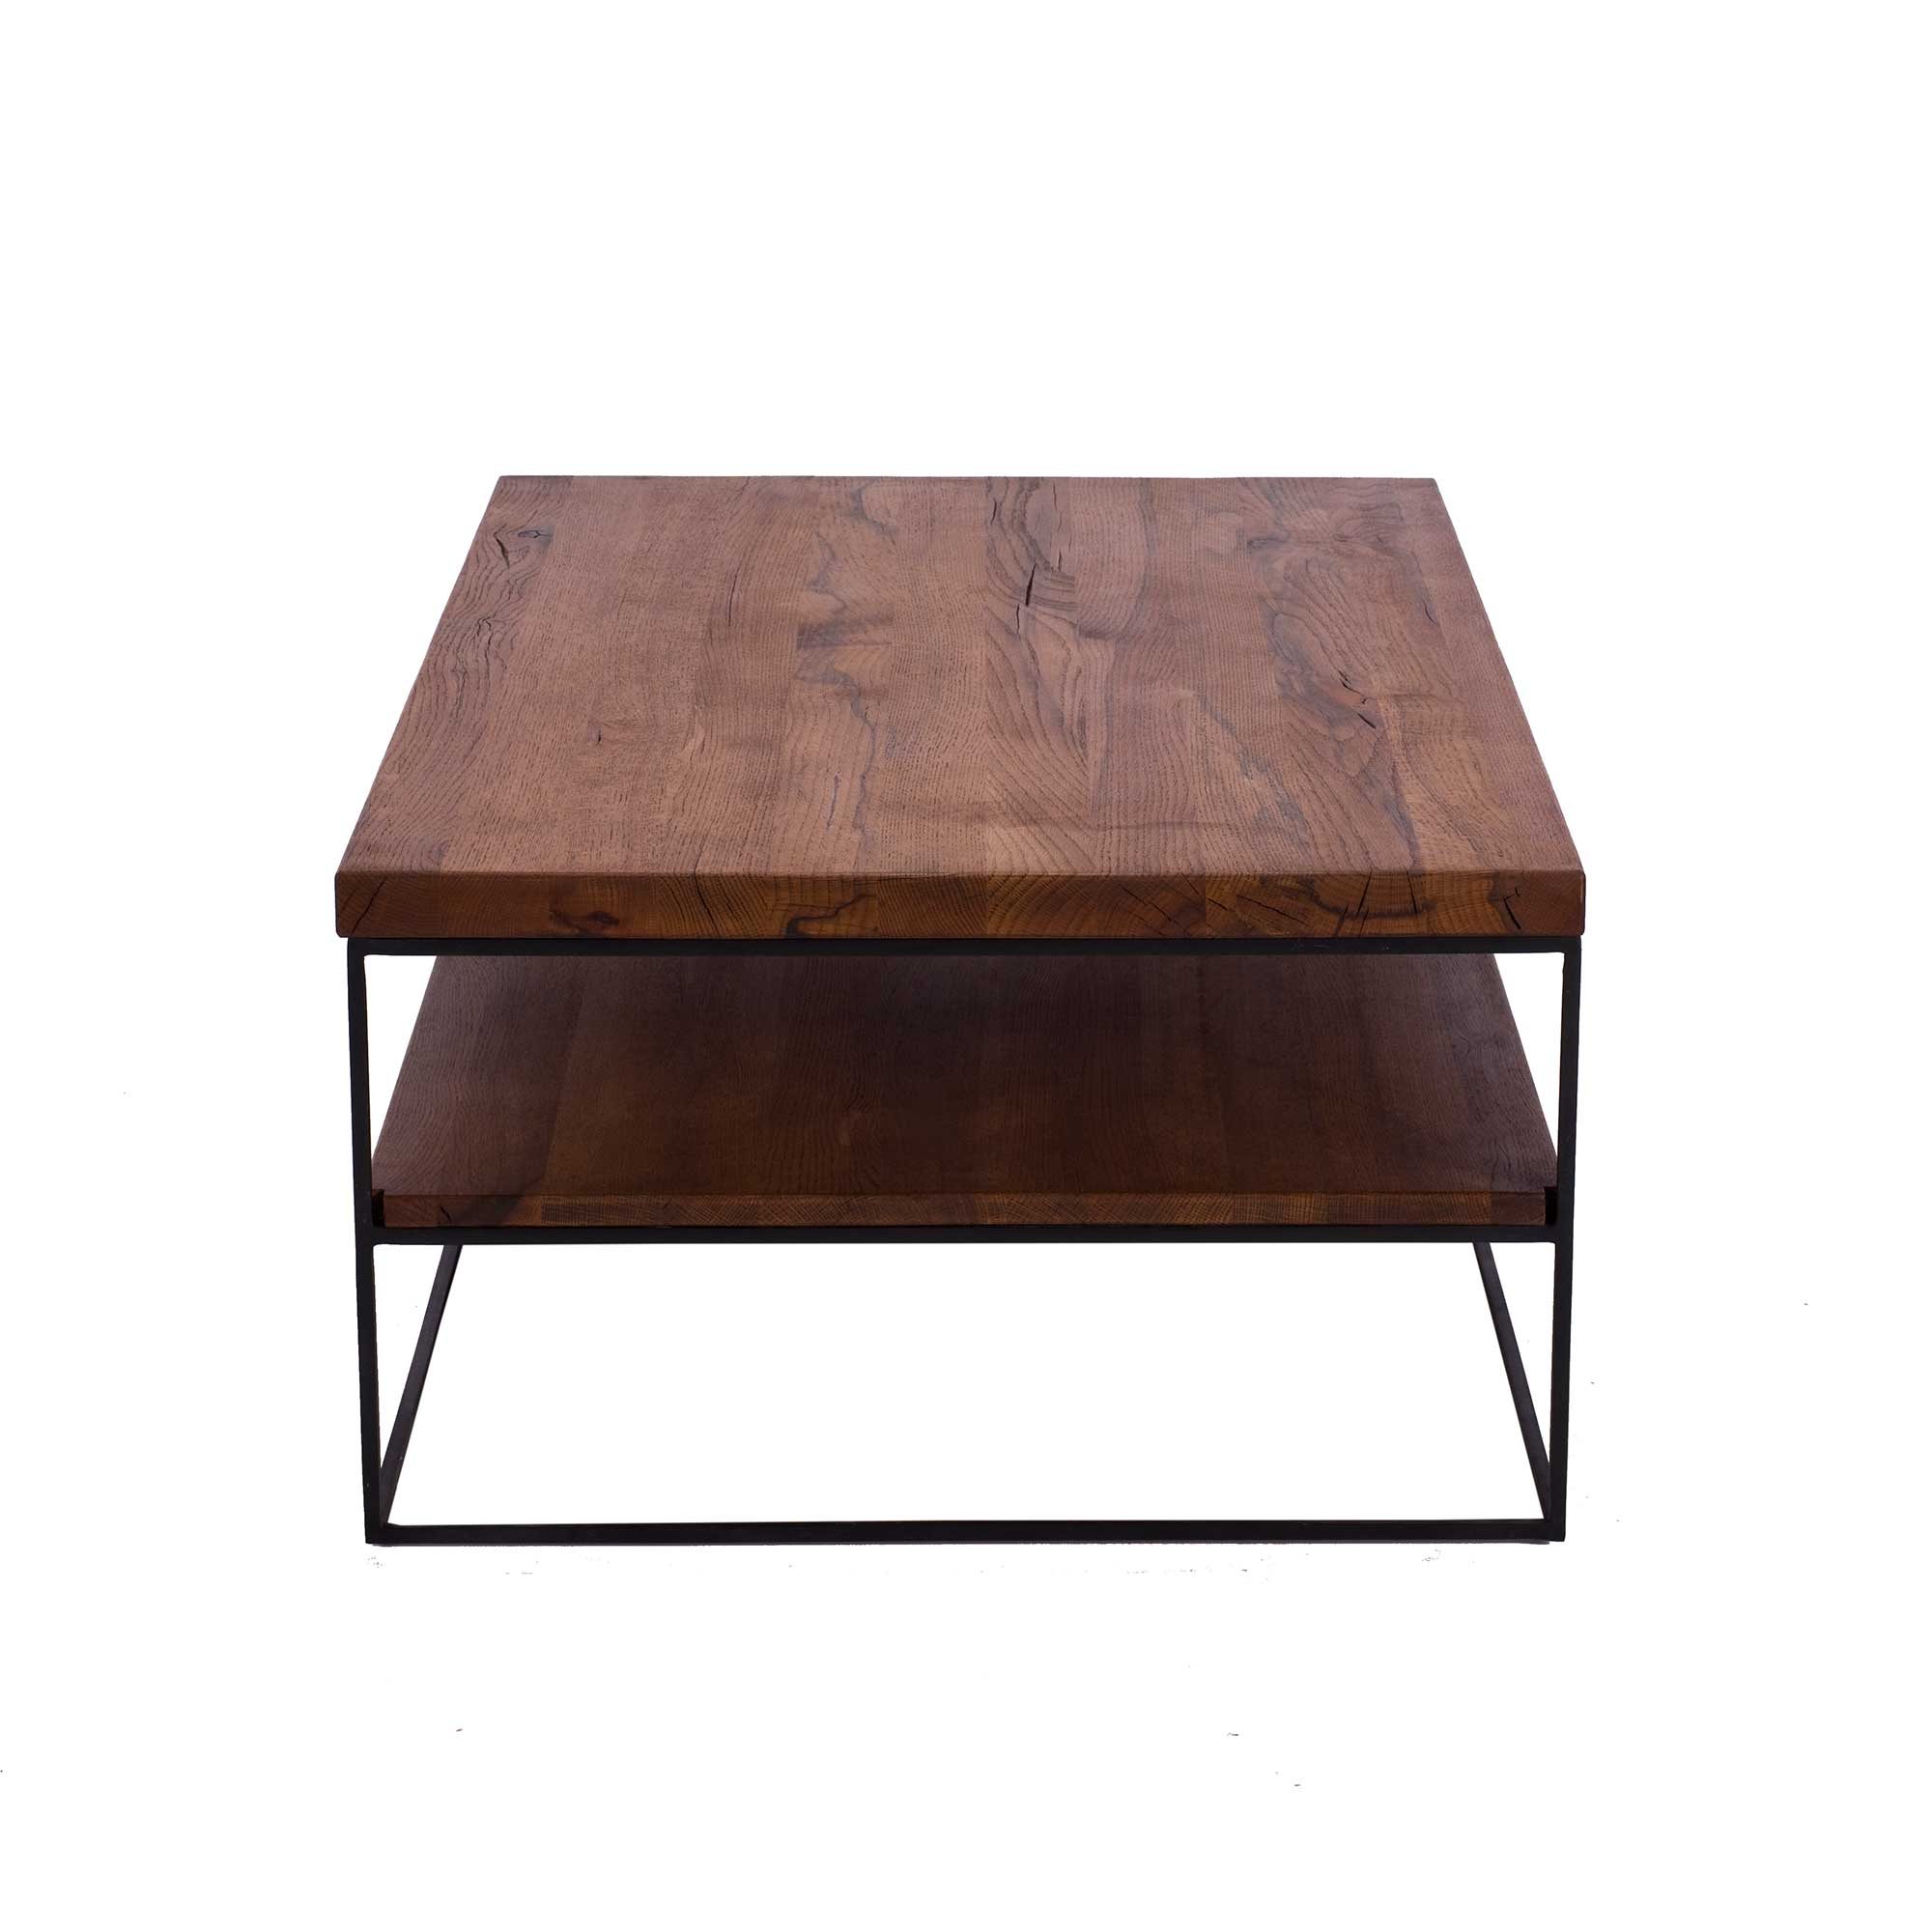 CORMAR OILED OAK COFFEE TABLE - L120cm x D70cm x H40cm SIDE VIEW